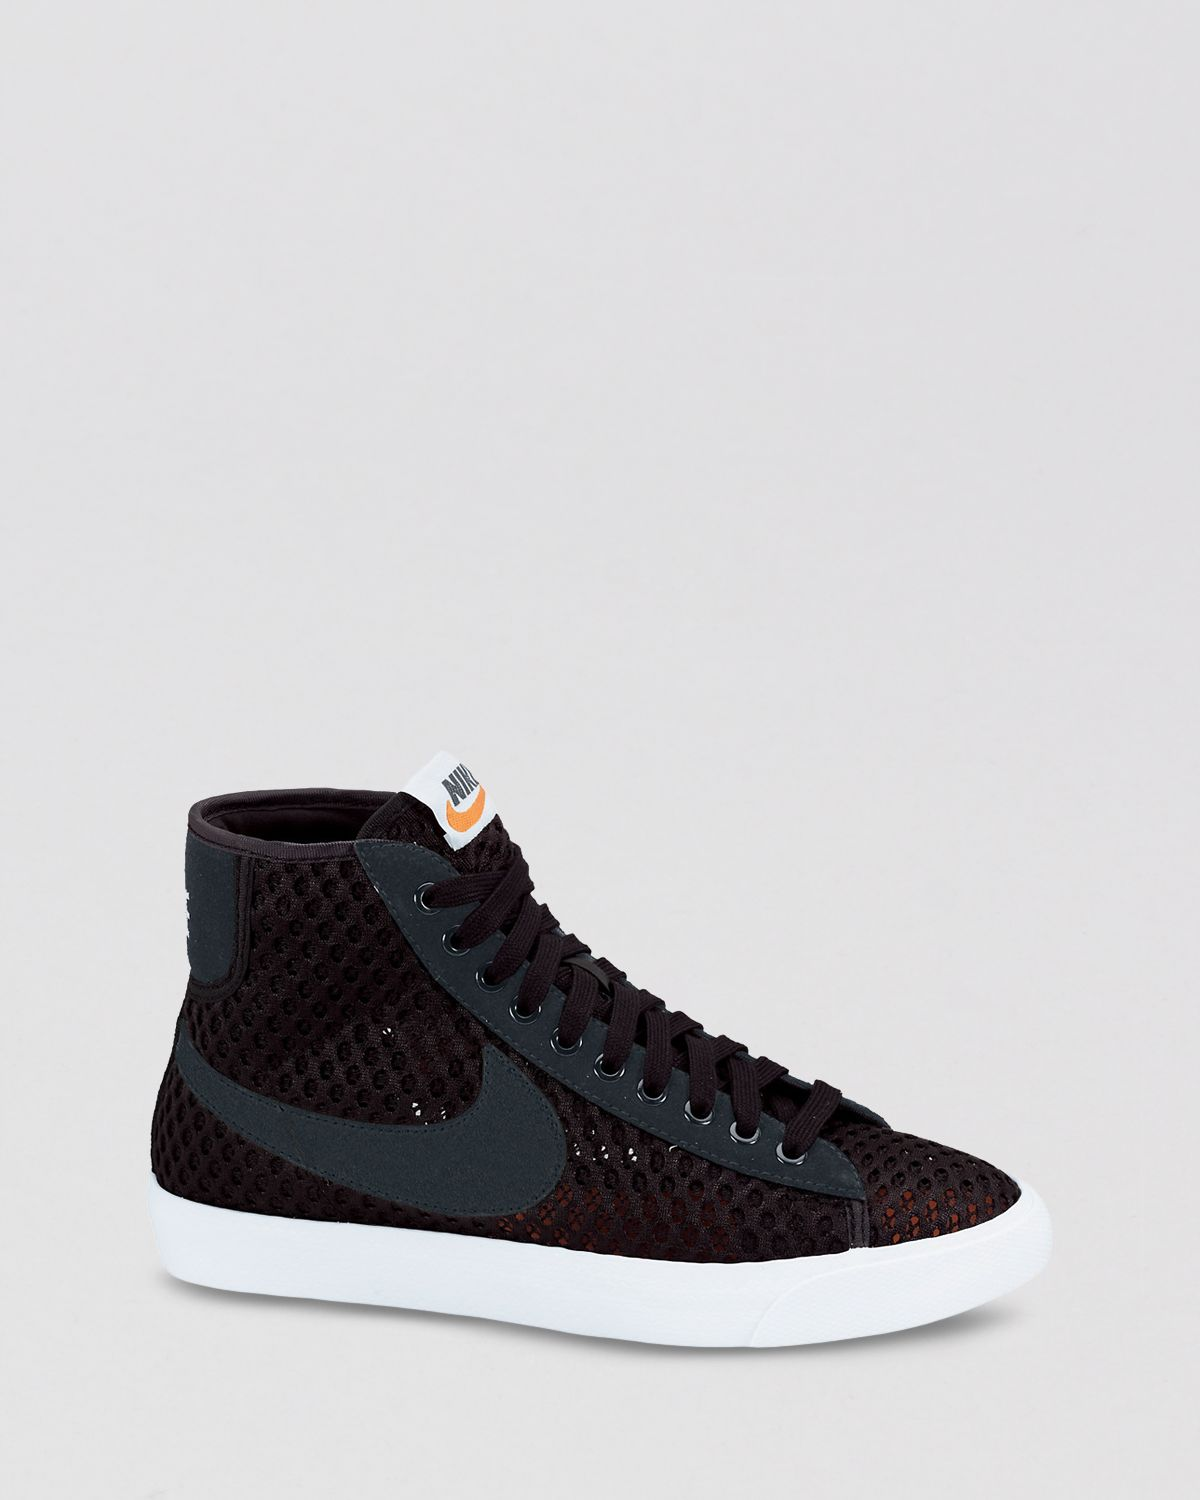 1b06c9babfef ... shop lyst nike sneakers lace up high top sneakers womens blazer mid  91ac0 d045f